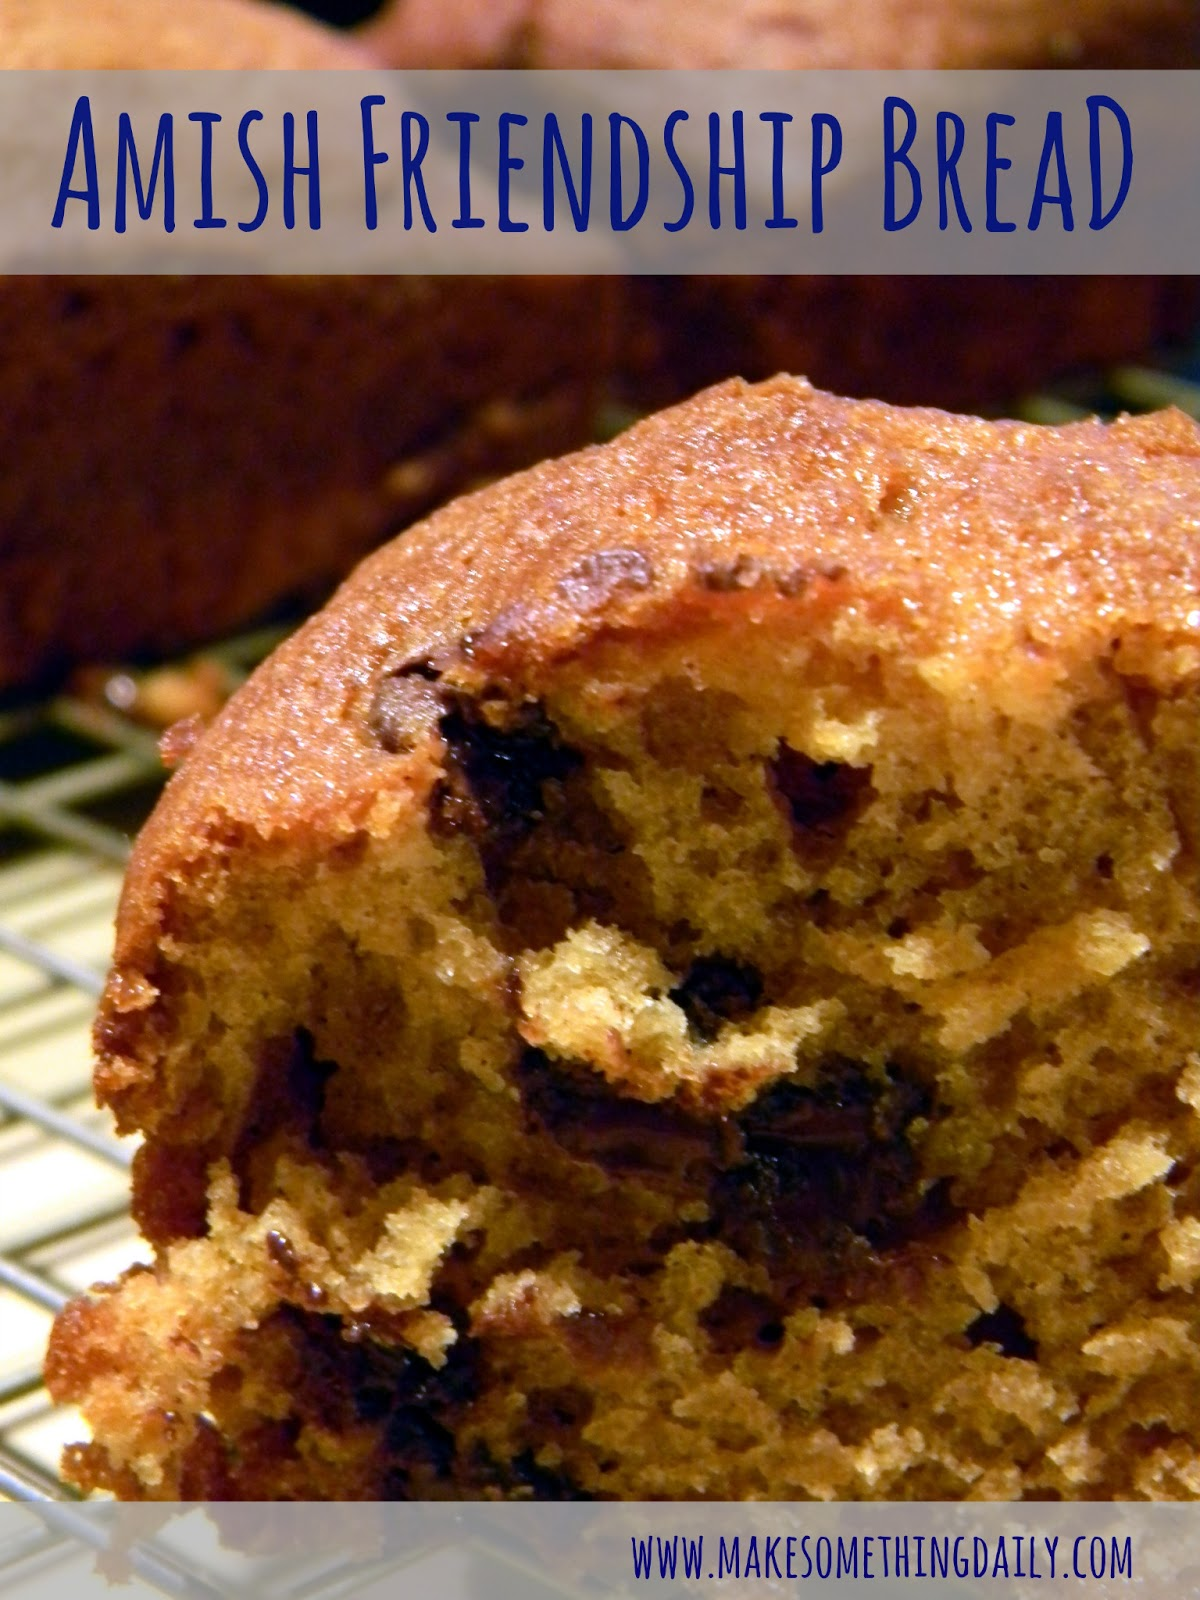 Amish Friendship Bread Original Recipe | Make Something Daily